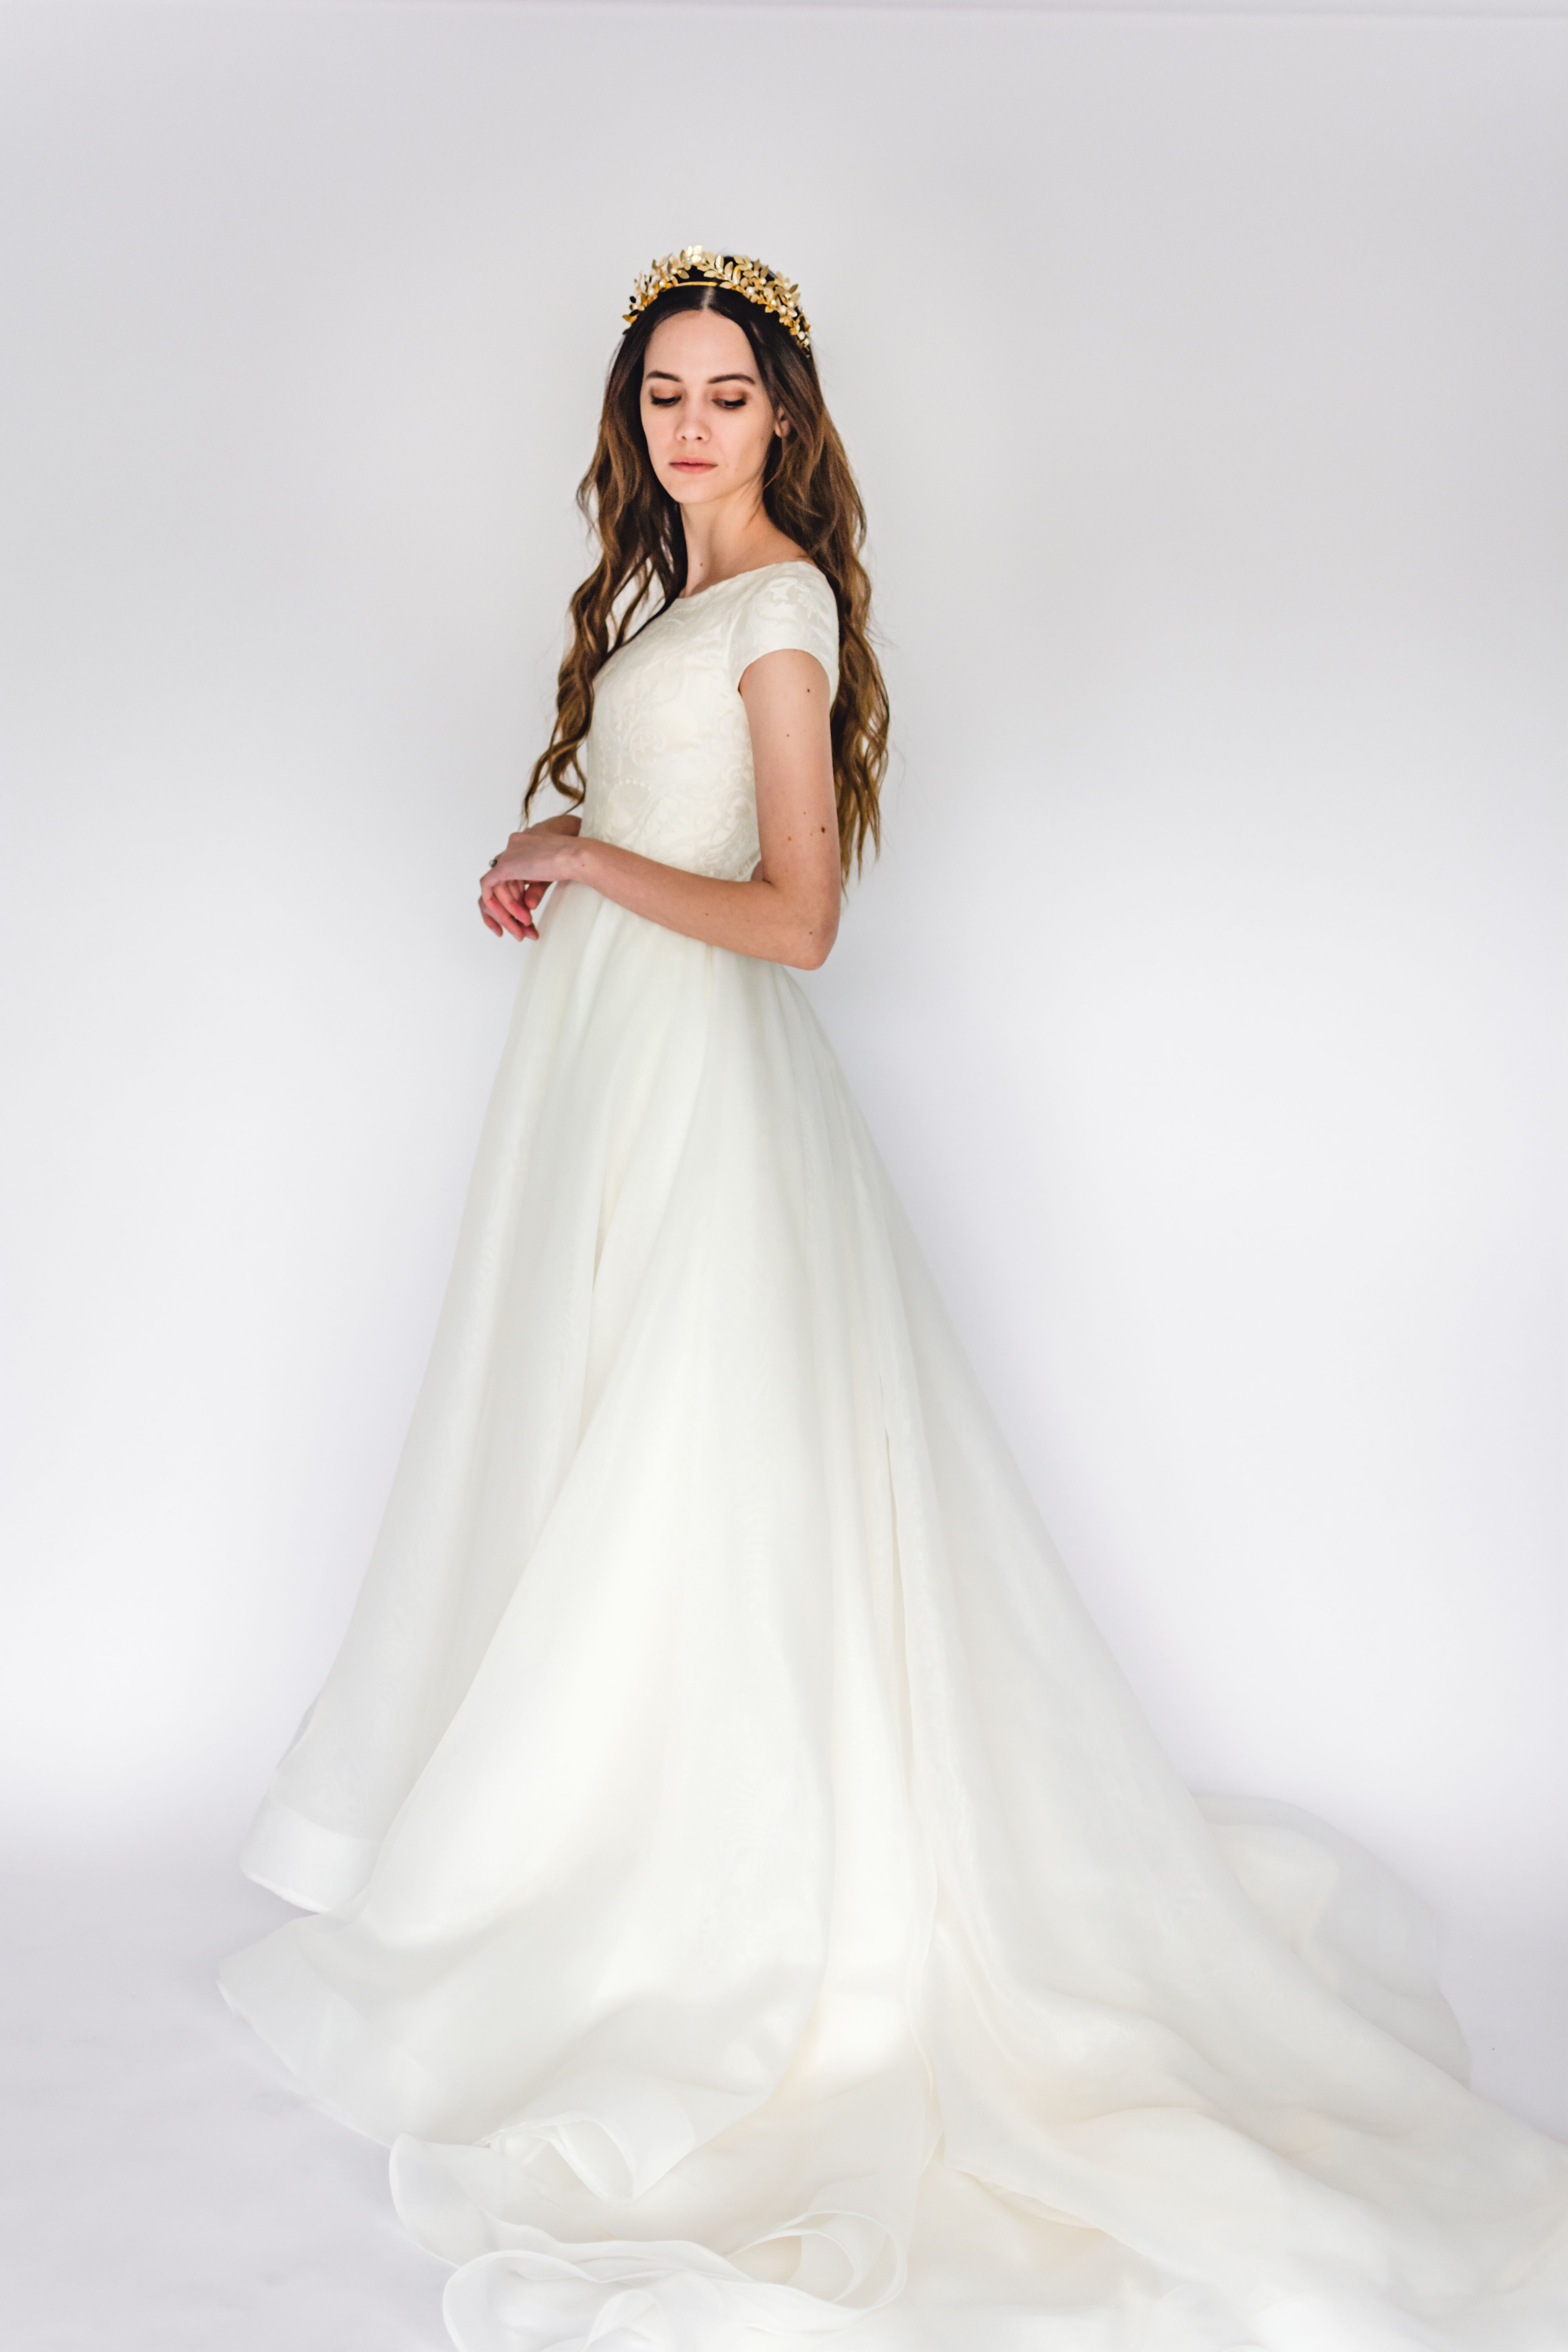 Holly Gown Woodland Collection By Elizabeth Cooper Design Beautifully Dunn Phot Wedding Dresses 101 Modest Wedding Dresses With Sleeves Amazing Wedding Dress